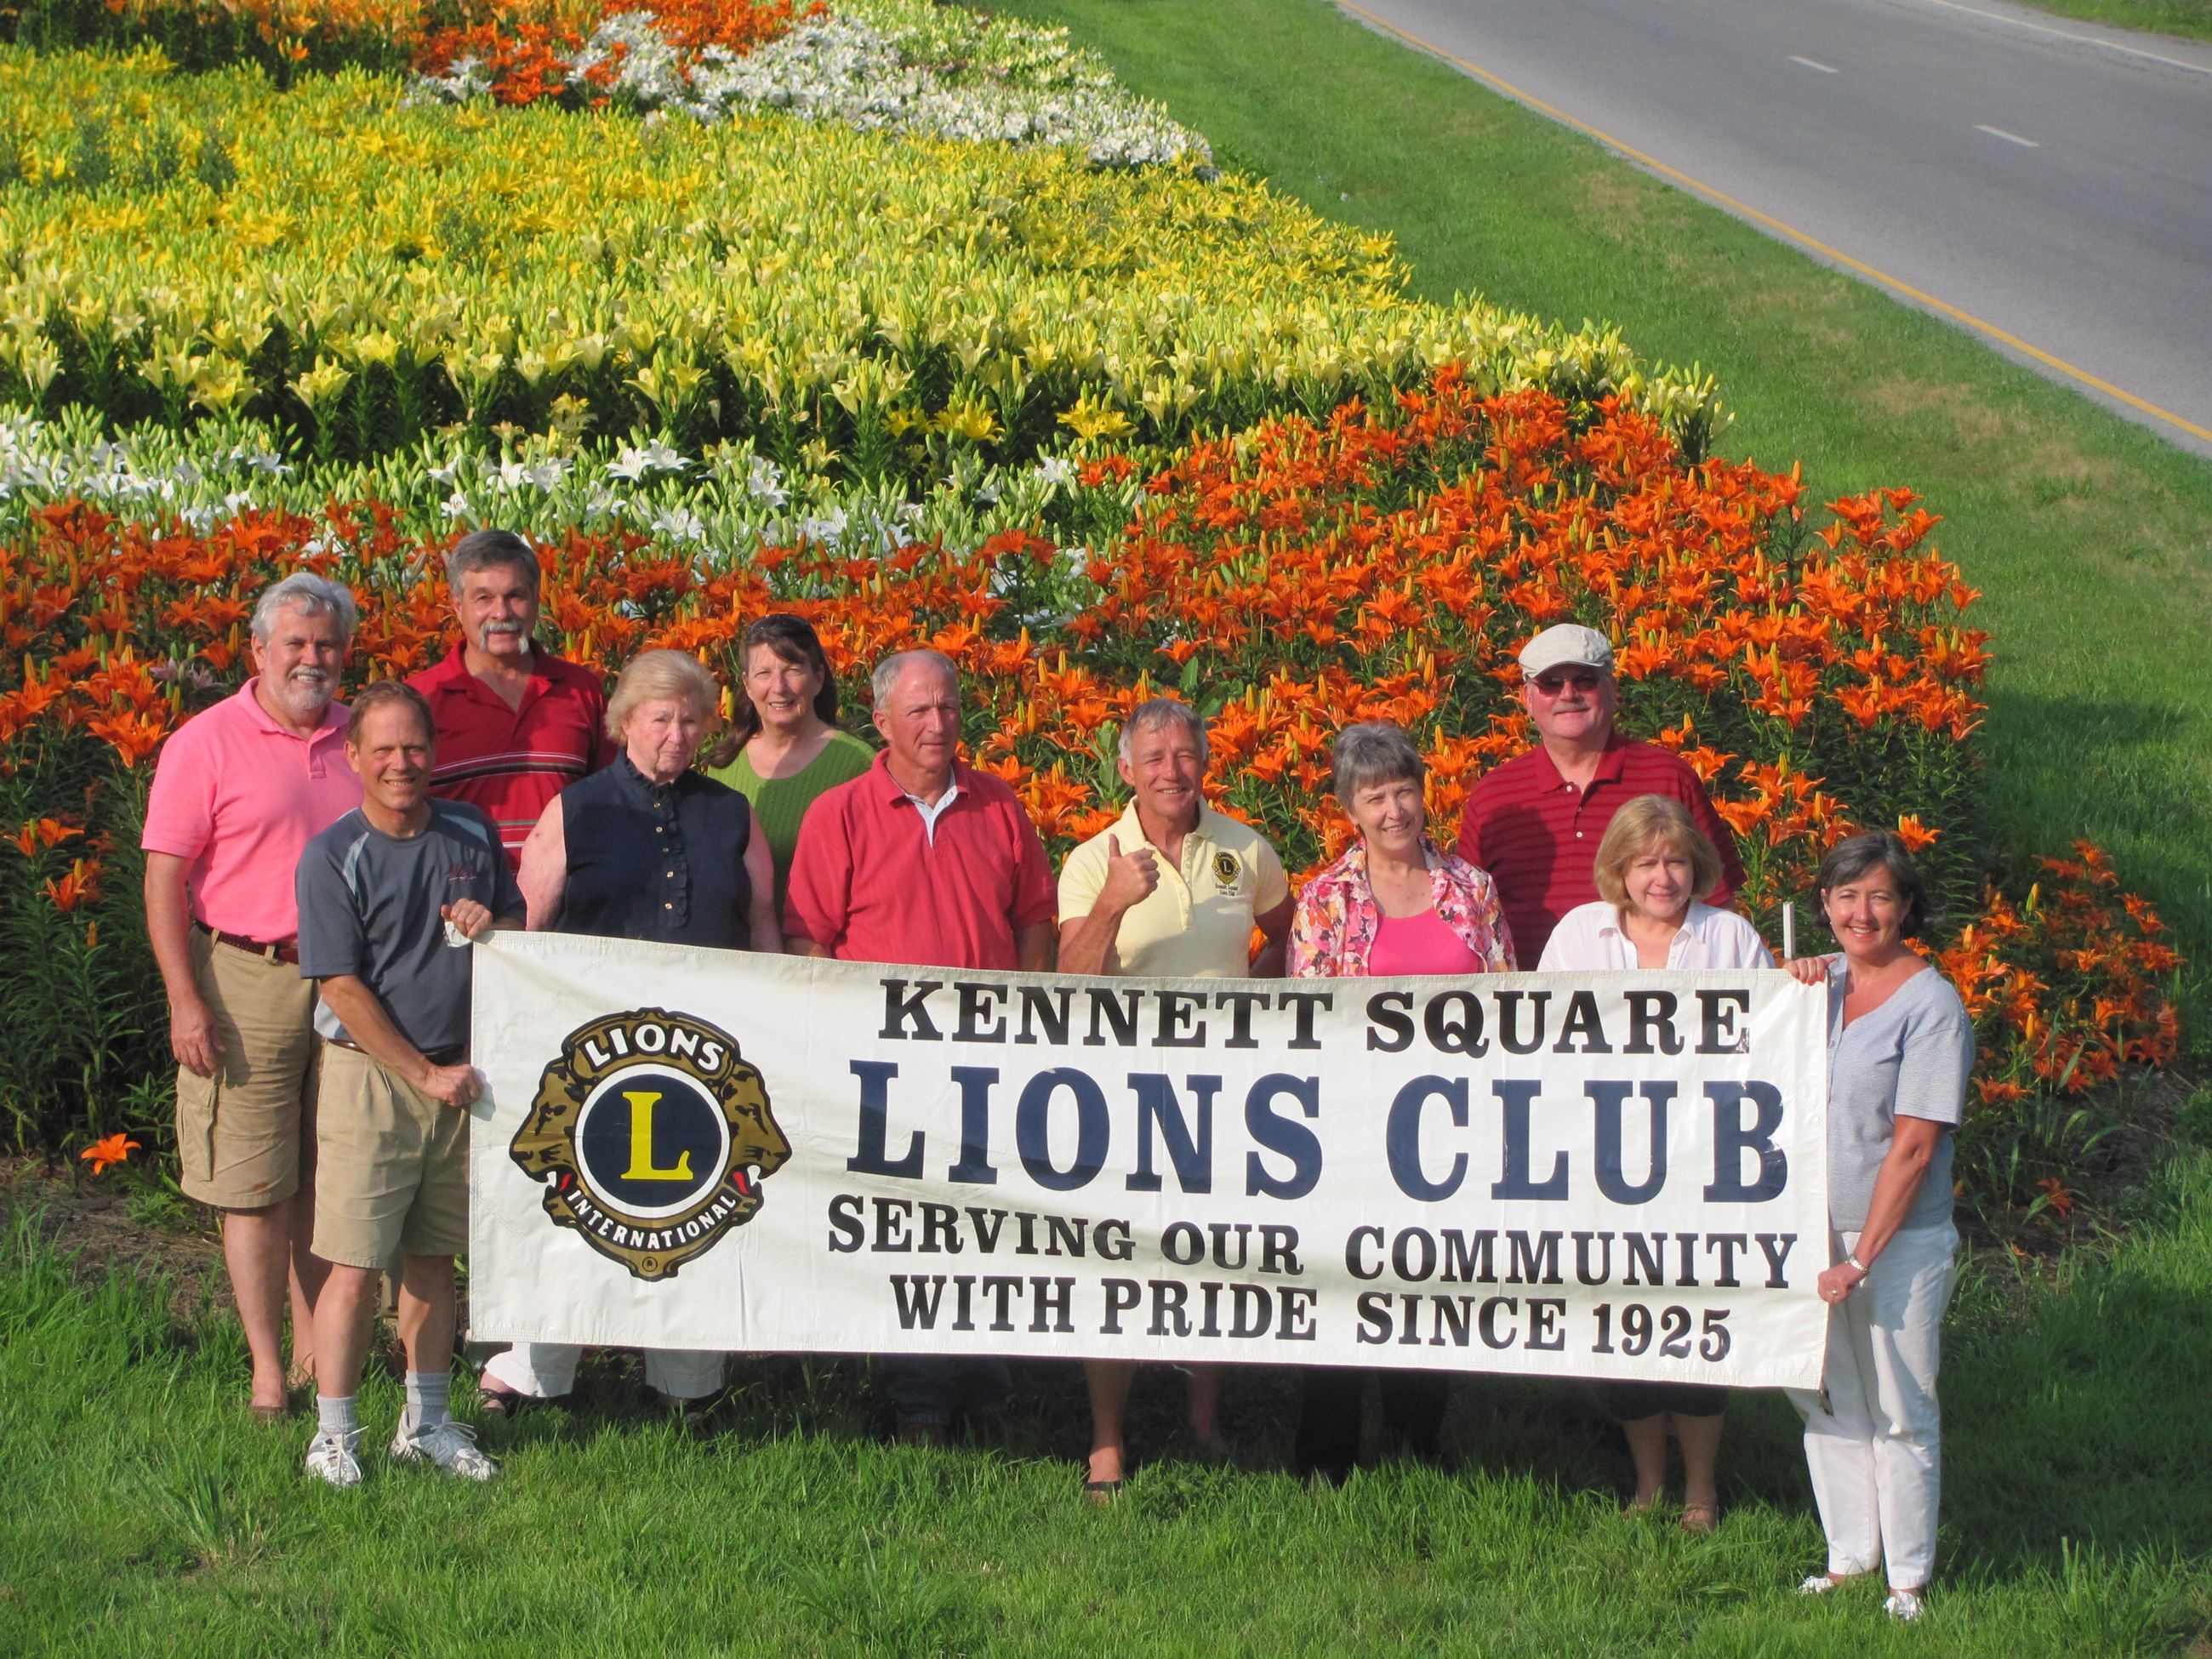 Kennett Square Lions Club Serving Our Community Wi